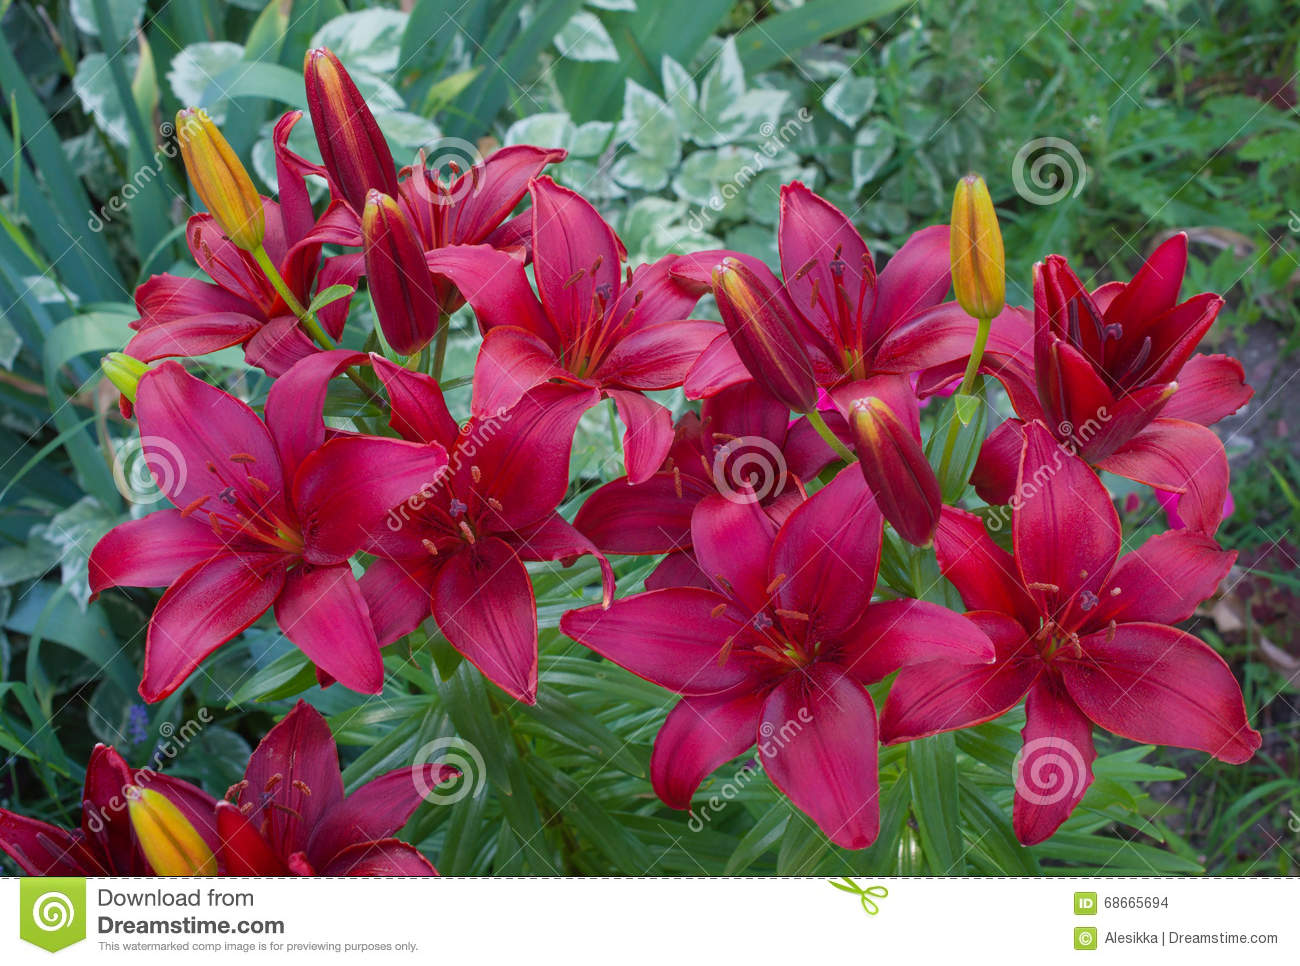 Lily varieties flowers stock photo image of fragility 68665694 lily varieties flowers izmirmasajfo